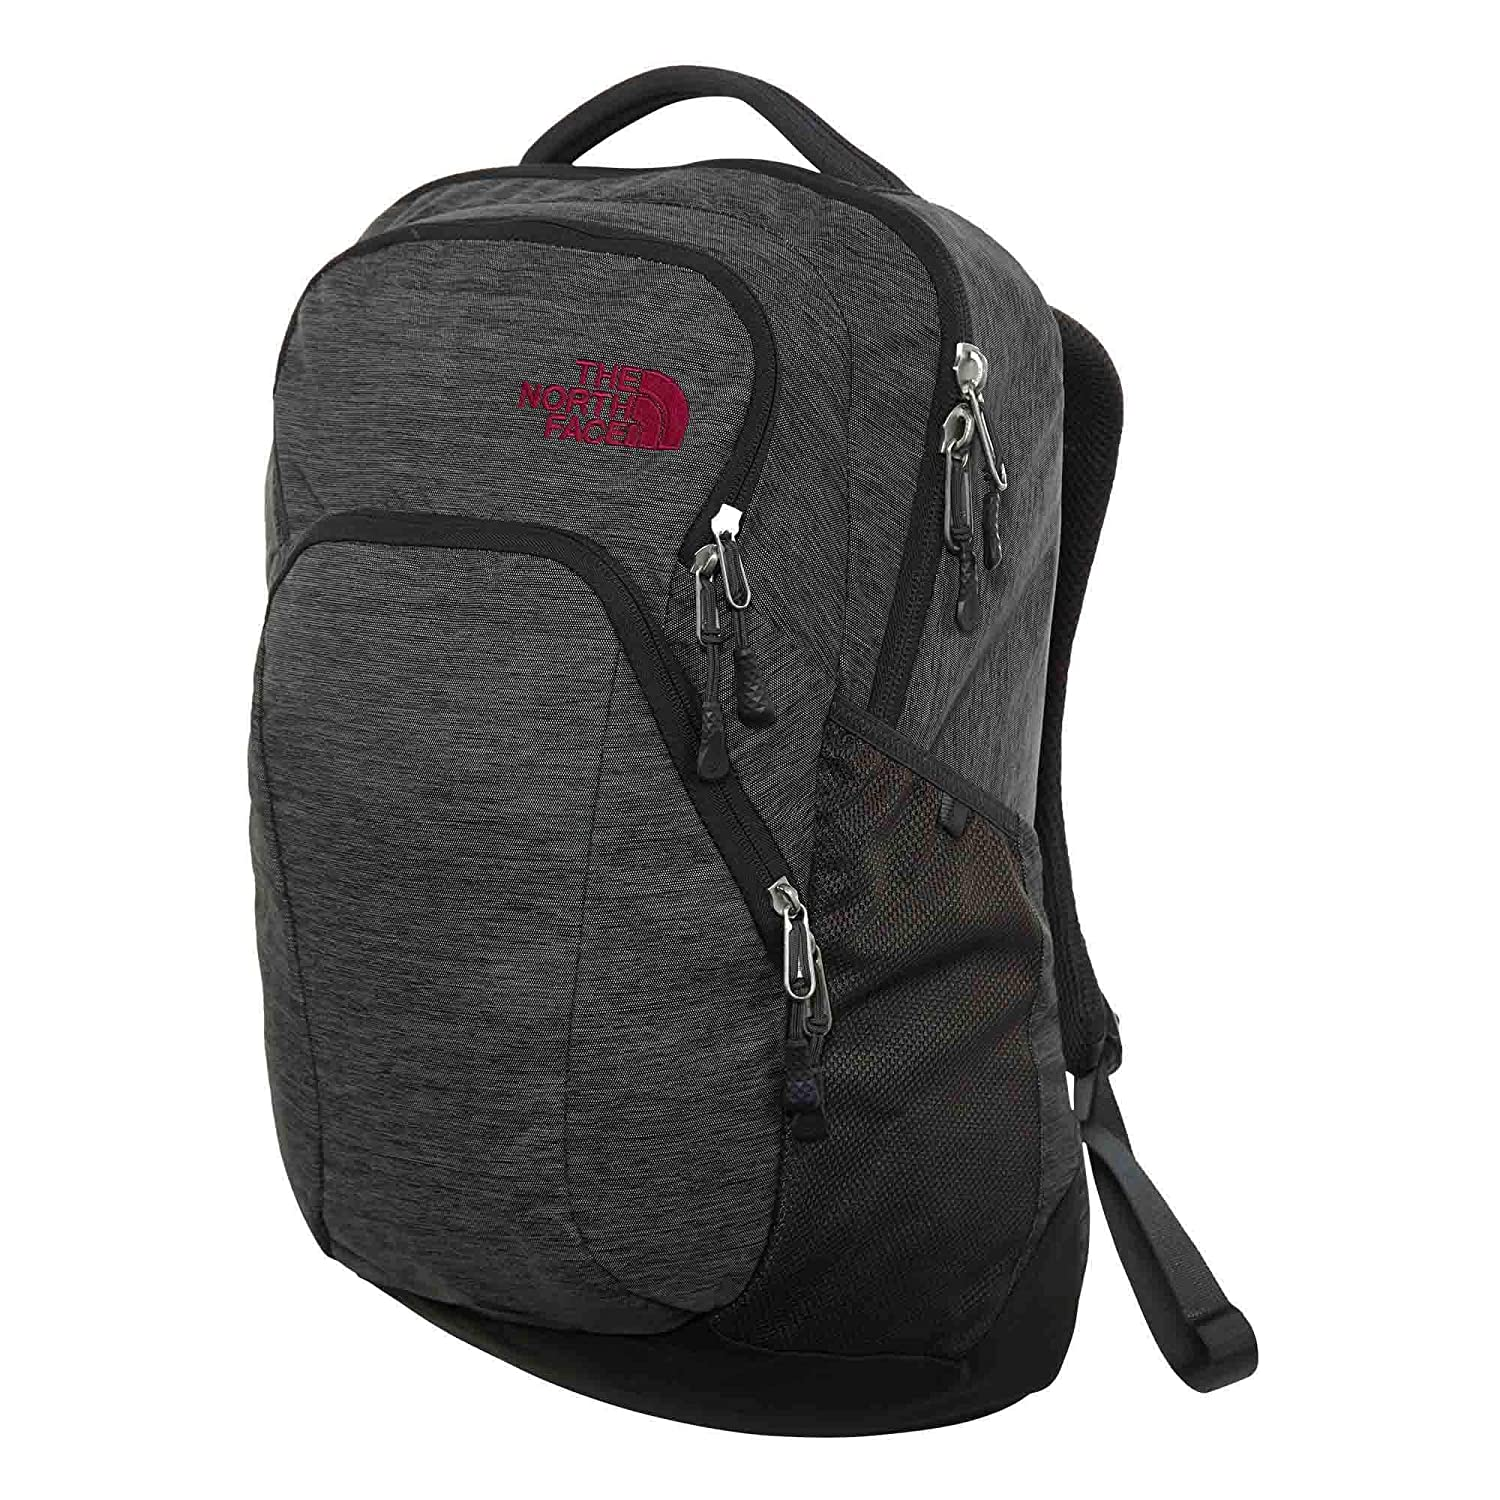 b44dbb43b The North Face Womens Pivoter Backpack